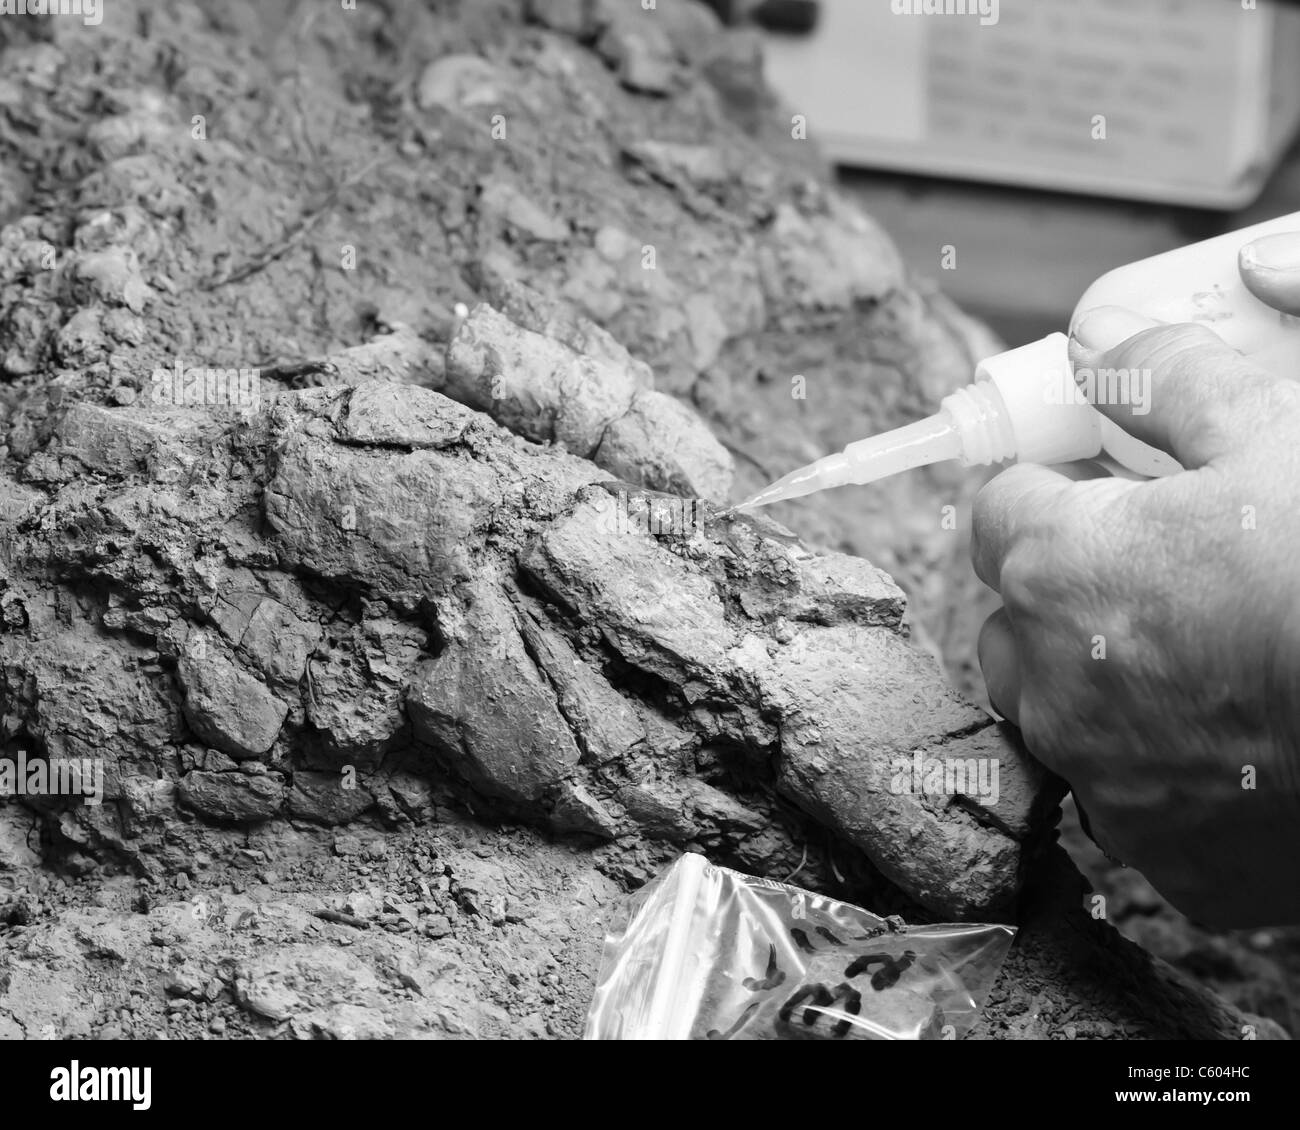 A volunteer at the Dinosaur Discover Museum applying  Acryloid to a fossil - Stock Image